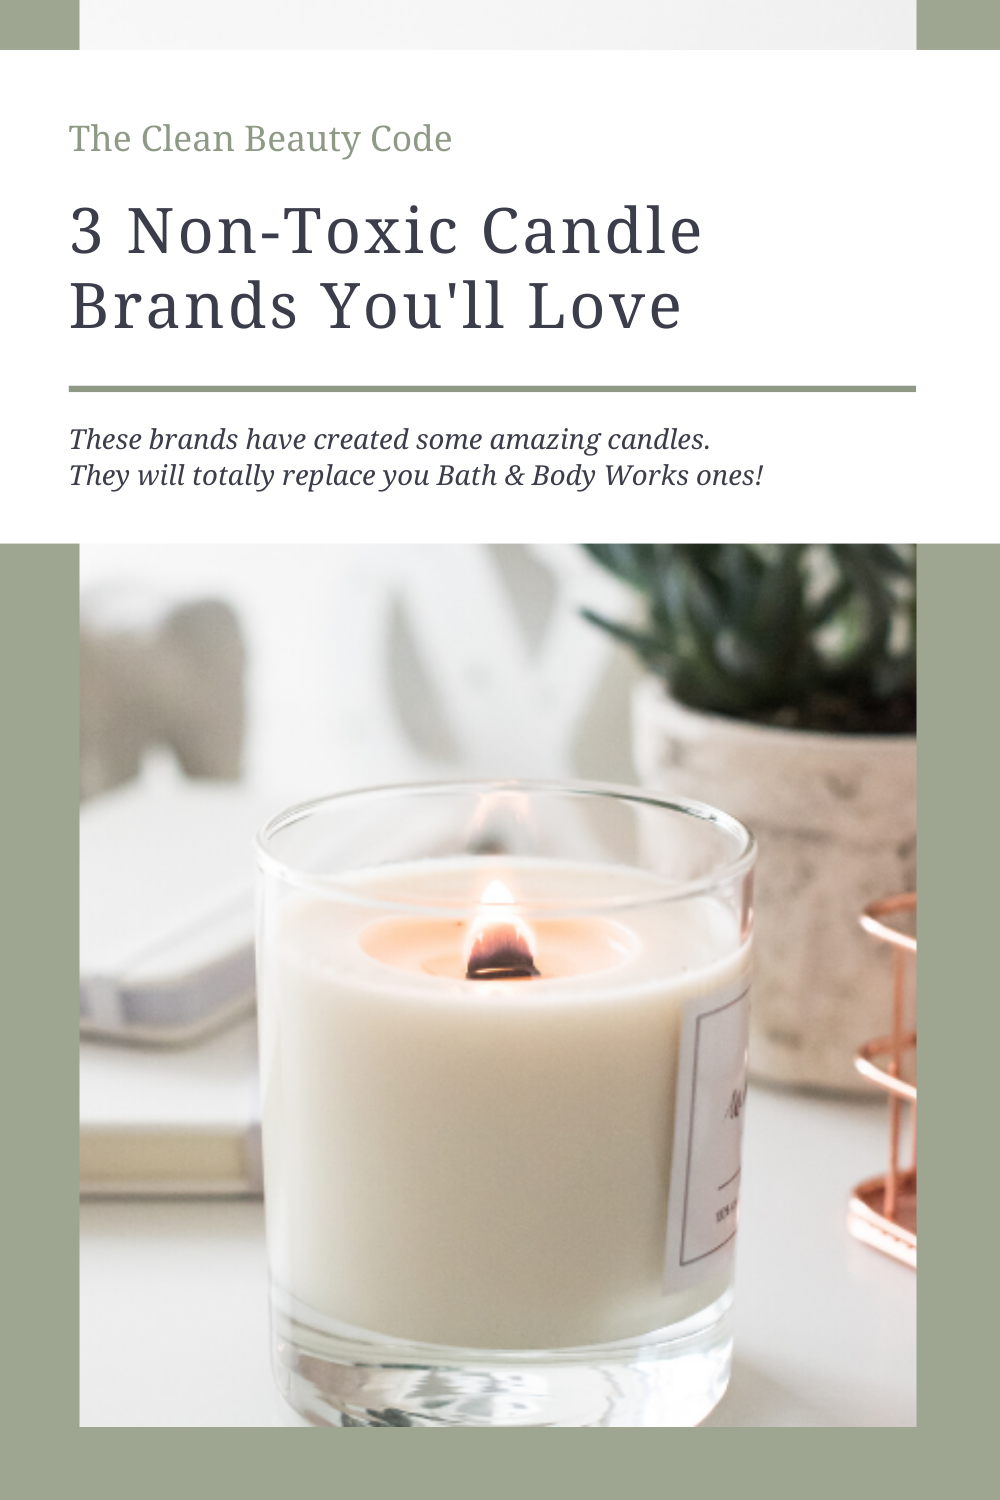 3 best nontoxic candle brands to have in your home! They